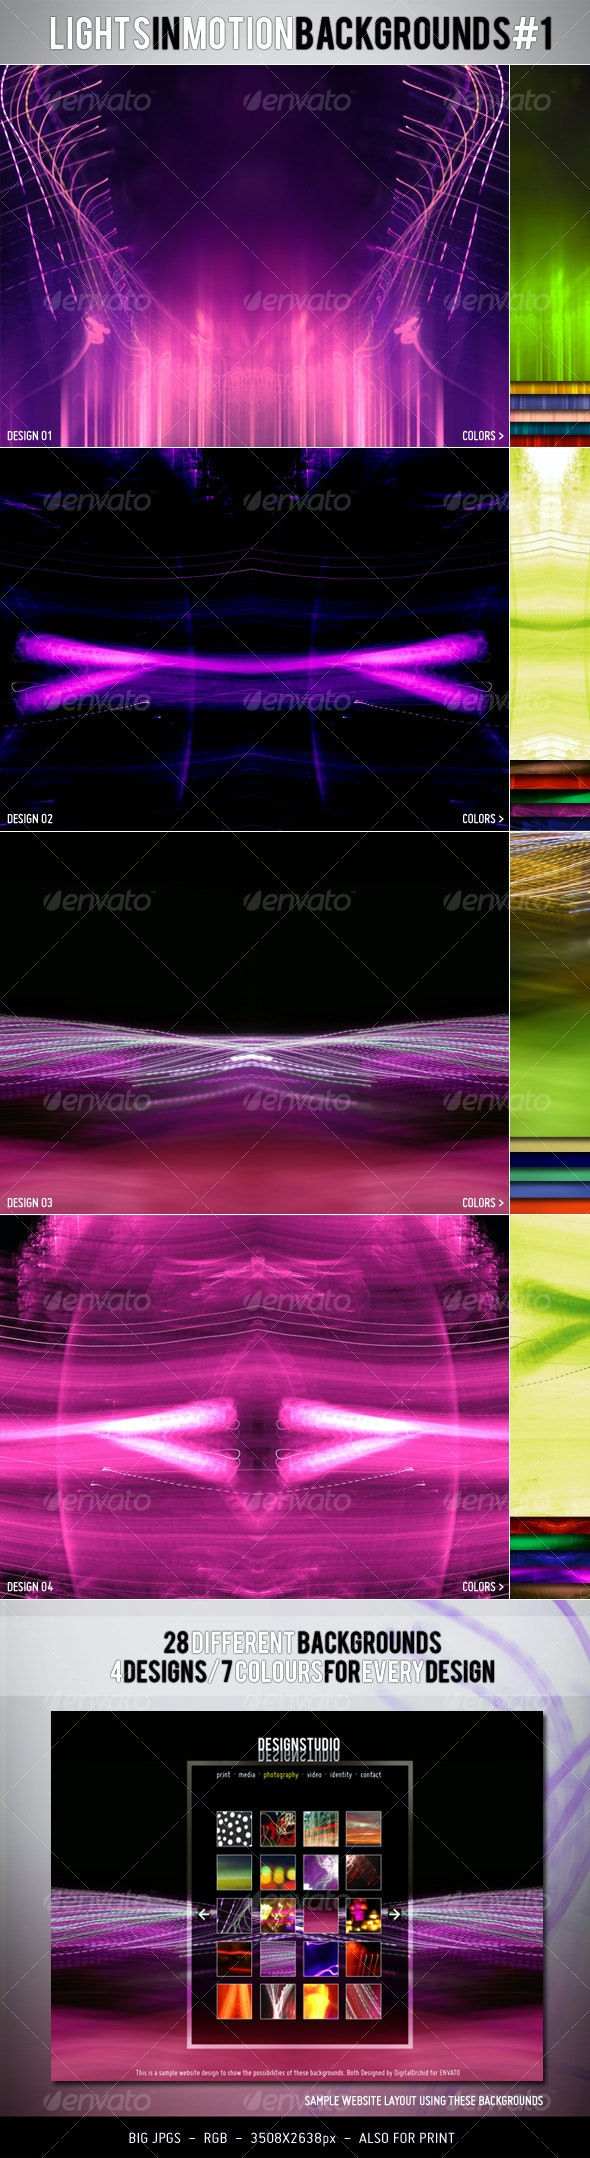 Lights in Motion Backgrounds #1 - Backgrounds Graphics